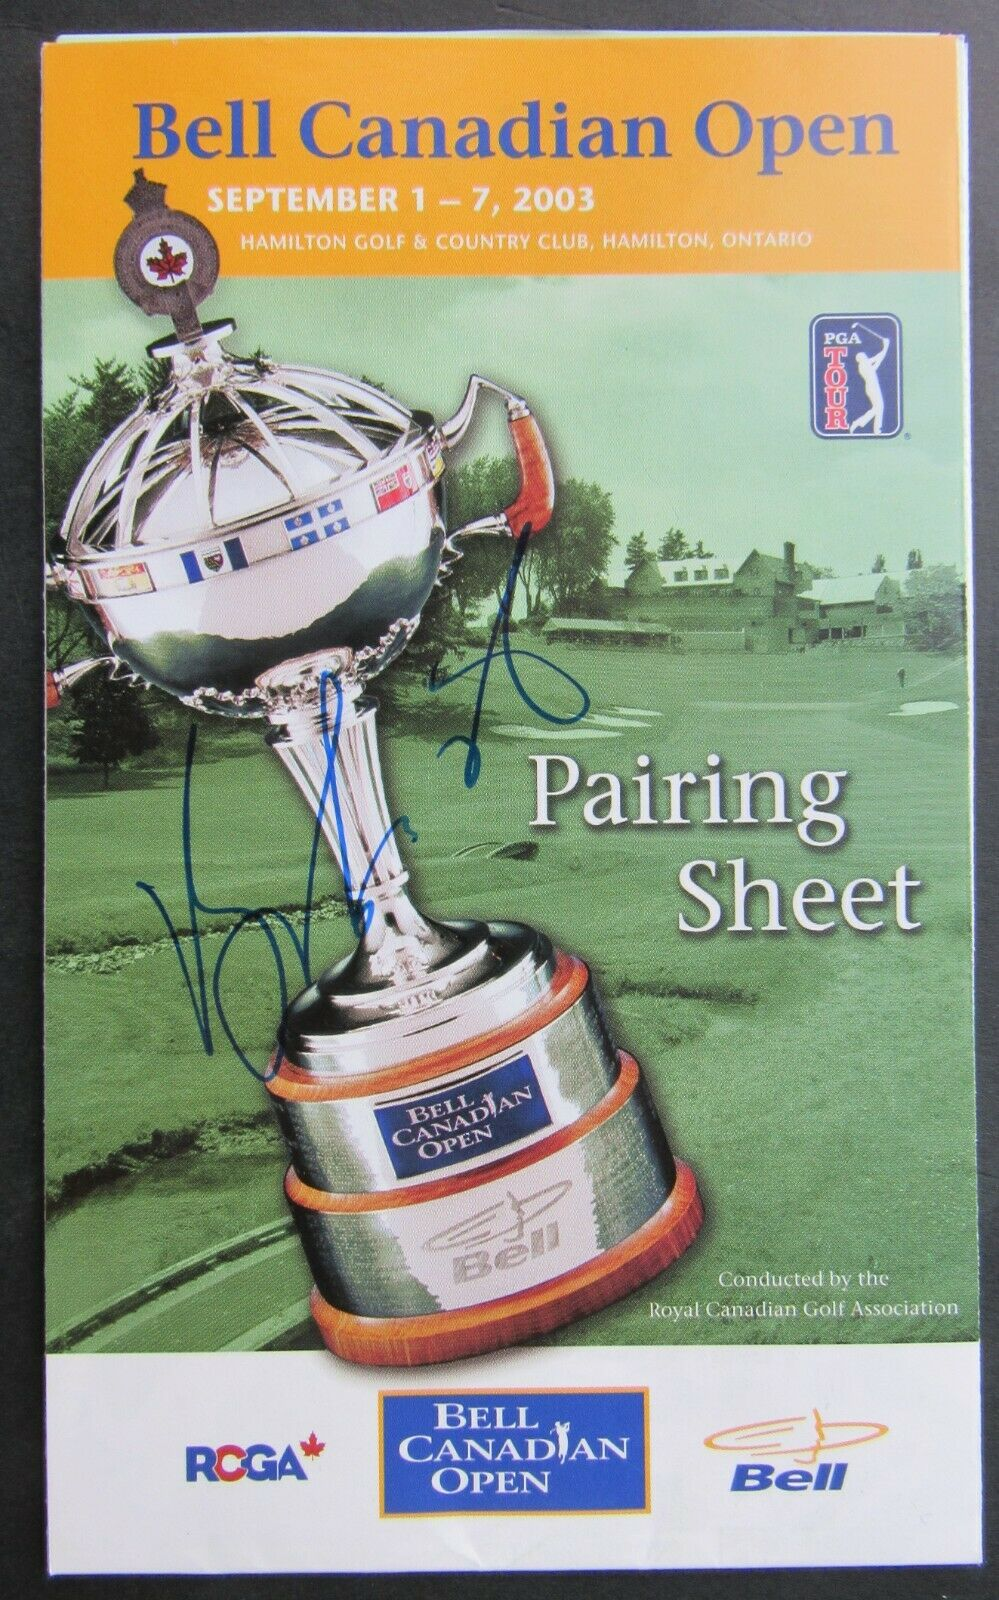 2003 Canadian Open Golf Tournament Final Day Pairing Sheet Signed By Vijay Singh